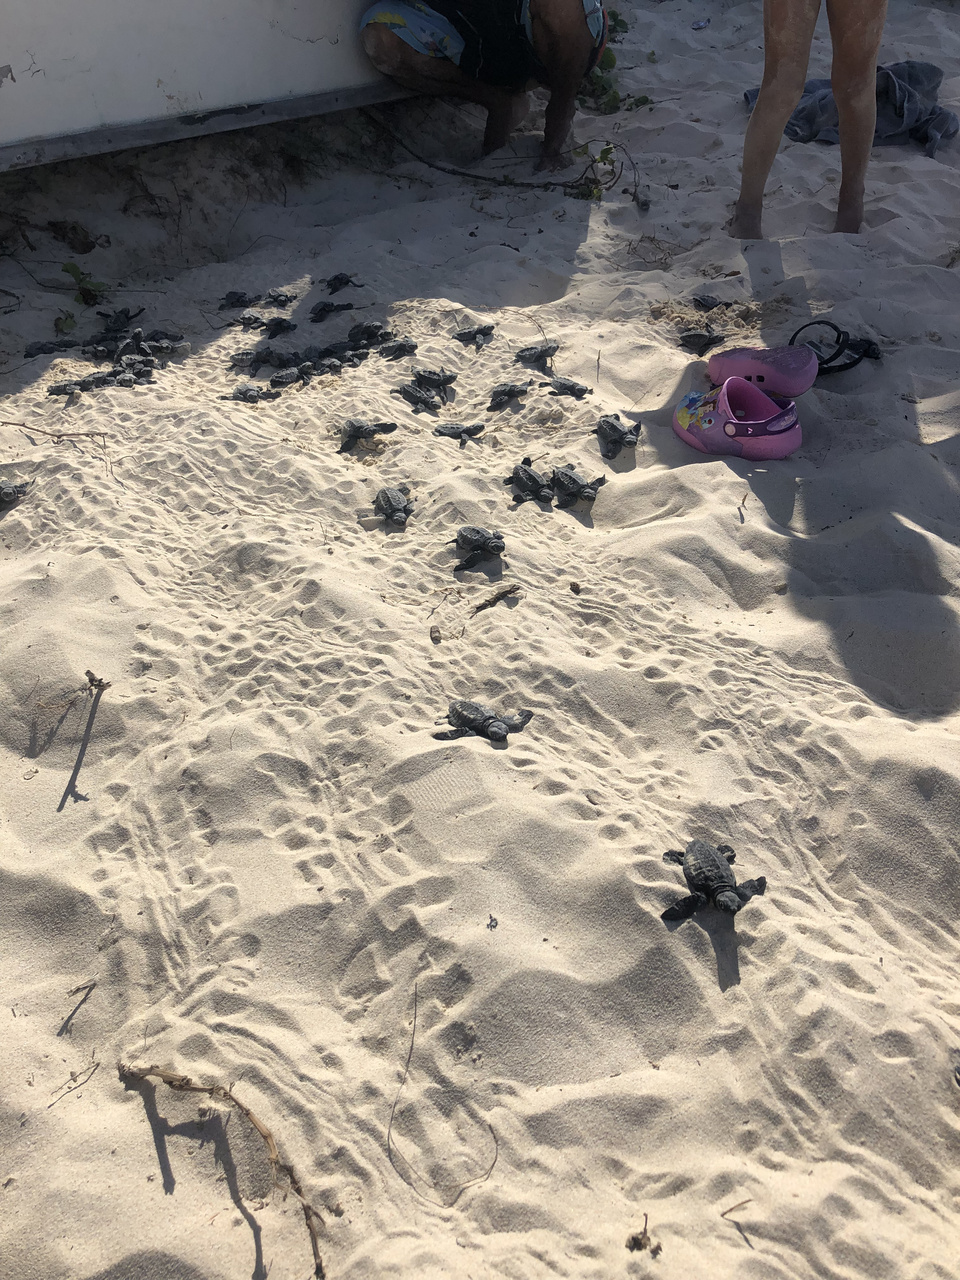 Approximately 30 olive ridley hatchlings crawling to the sea after found emerging from under a towel at Kailua Beach Park.